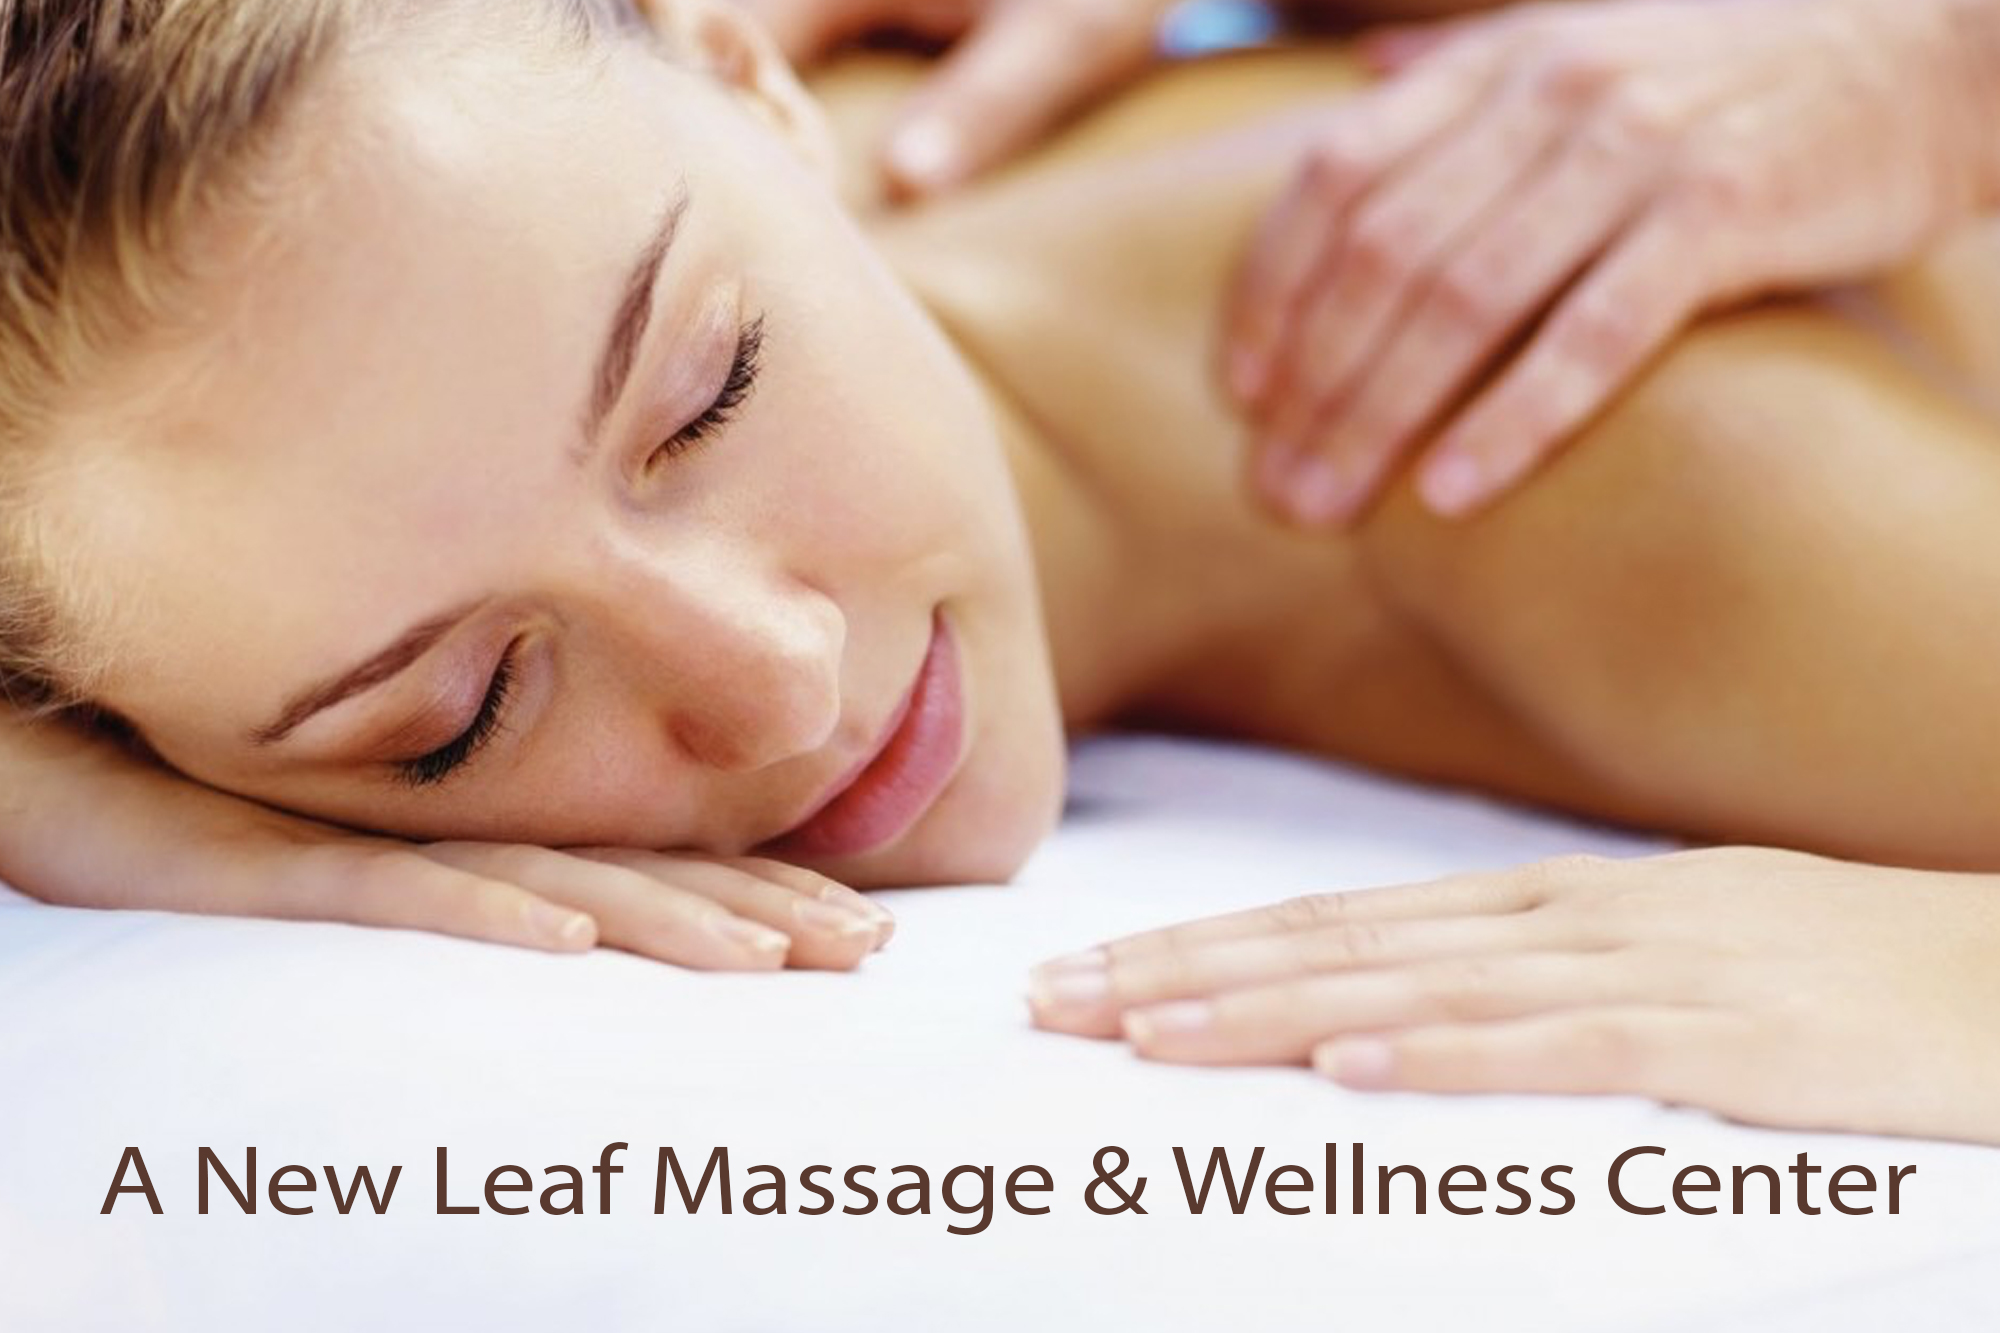 An LMT since 1998. I utilize many different techniques of massage and bodywork to assist with acute/chronic injuries, surgery prep/recovery, digestion/elimination issues and female struggles (fertility/breast cancer). Specially trained in sports massage and work with elite, professional and Olympic athletes.